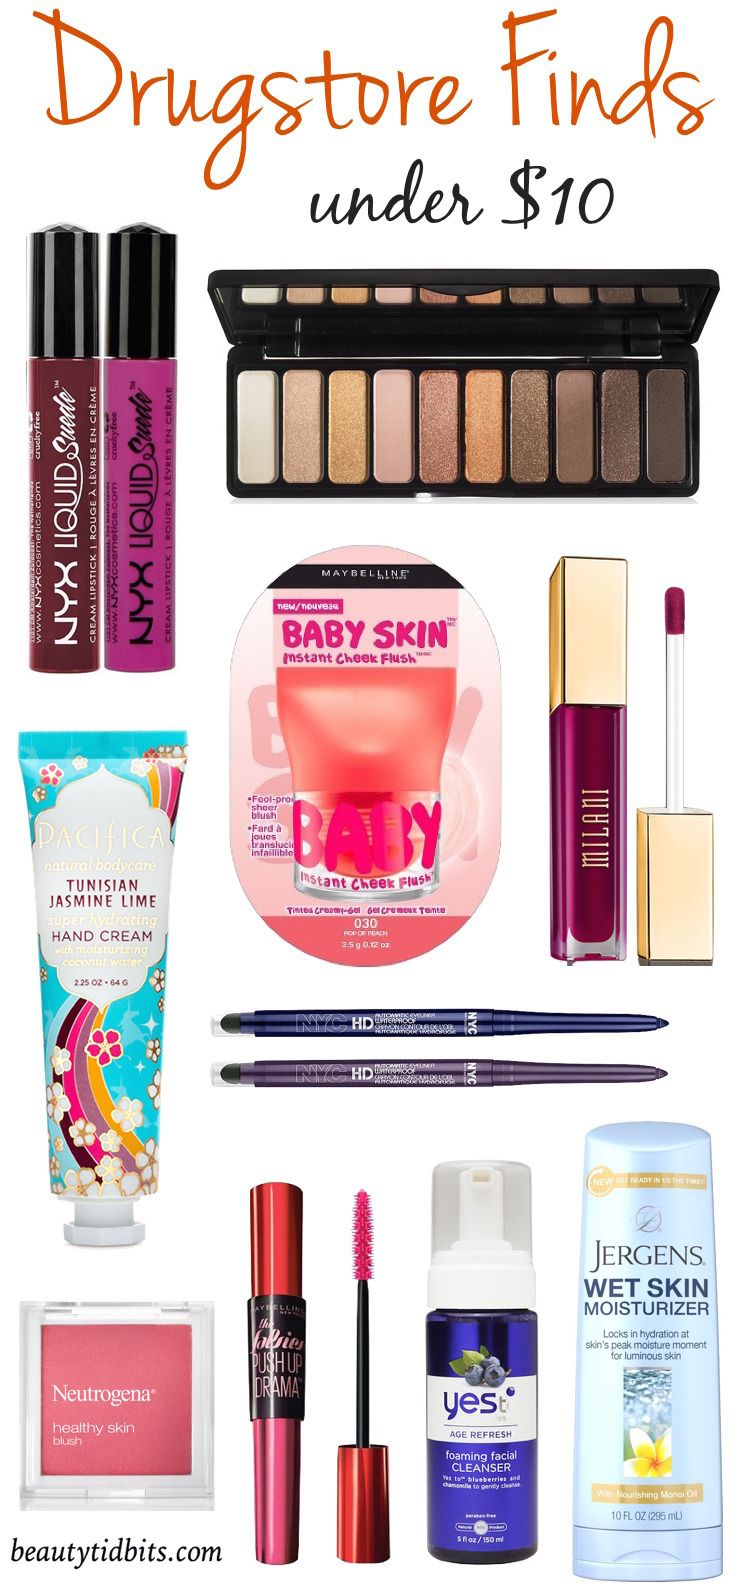 Amp up your look for fall with these hot new drugstore beauty products!